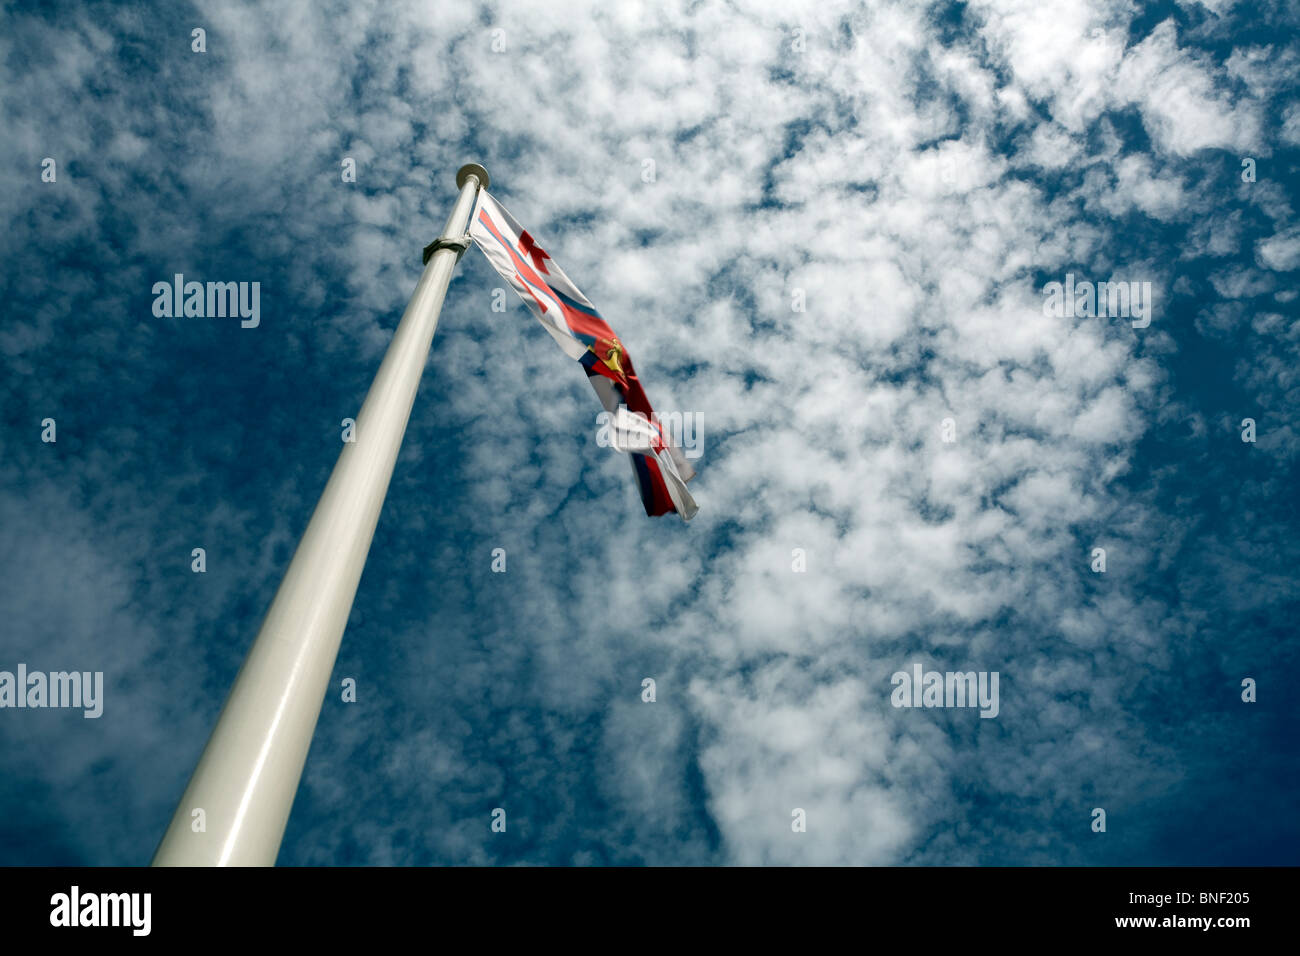 A skyward image of an RNLI flag fluttering at the top of a white flag pole set against a blue sky with speckled - Stock Image